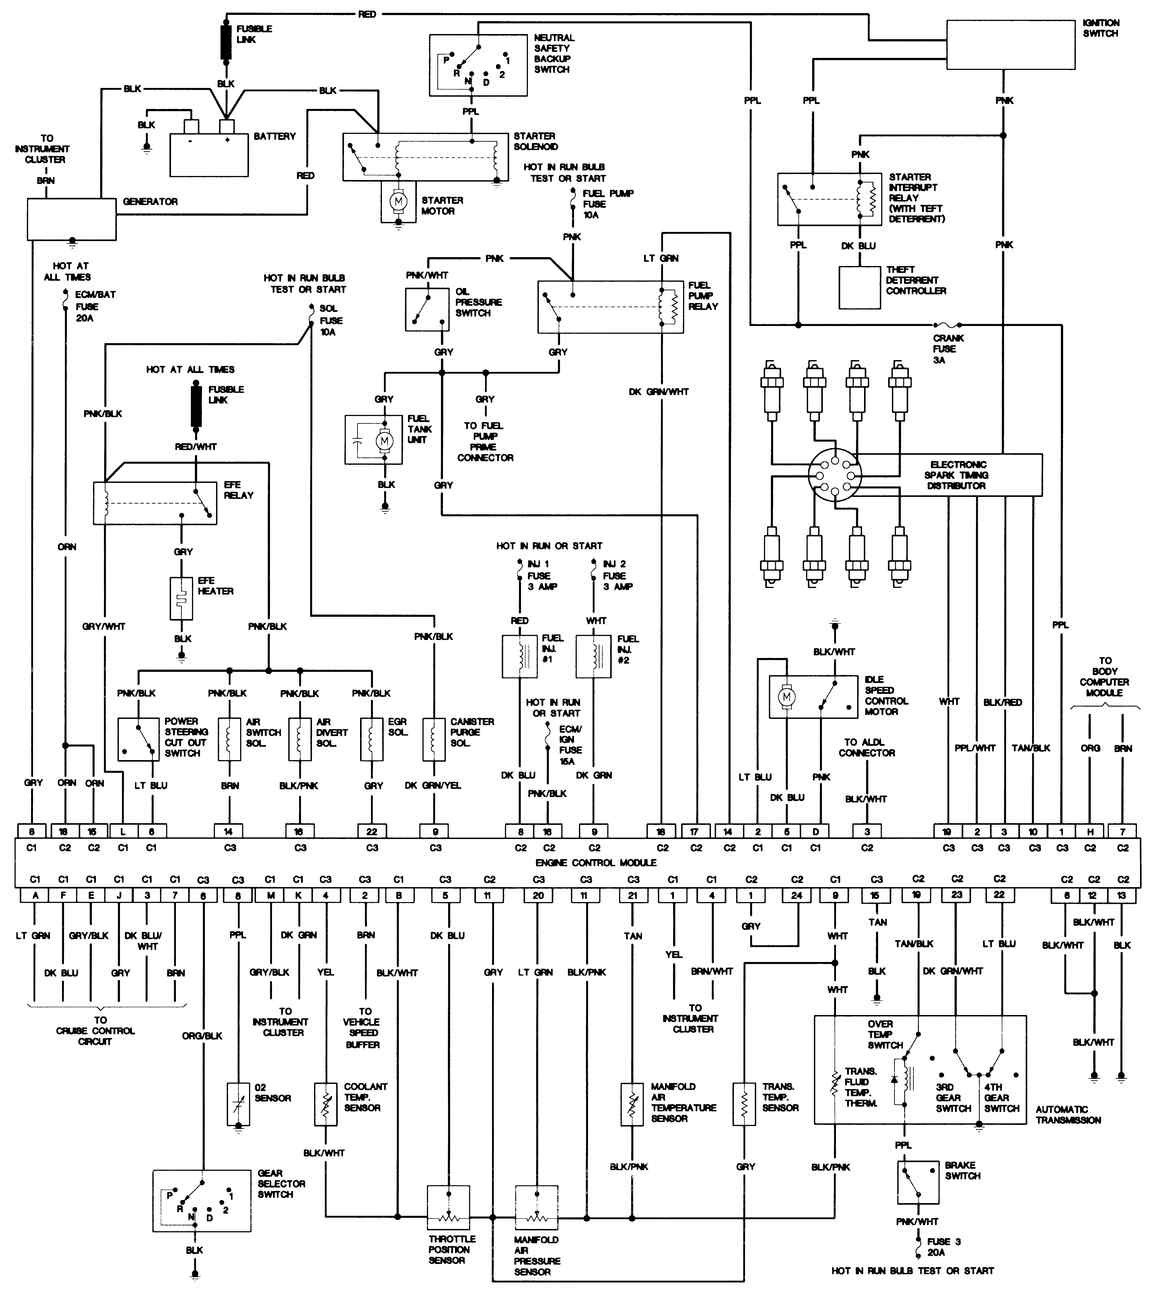 1998 Discovery Motorhome Battery Wiring Diagram - Wiring ... on